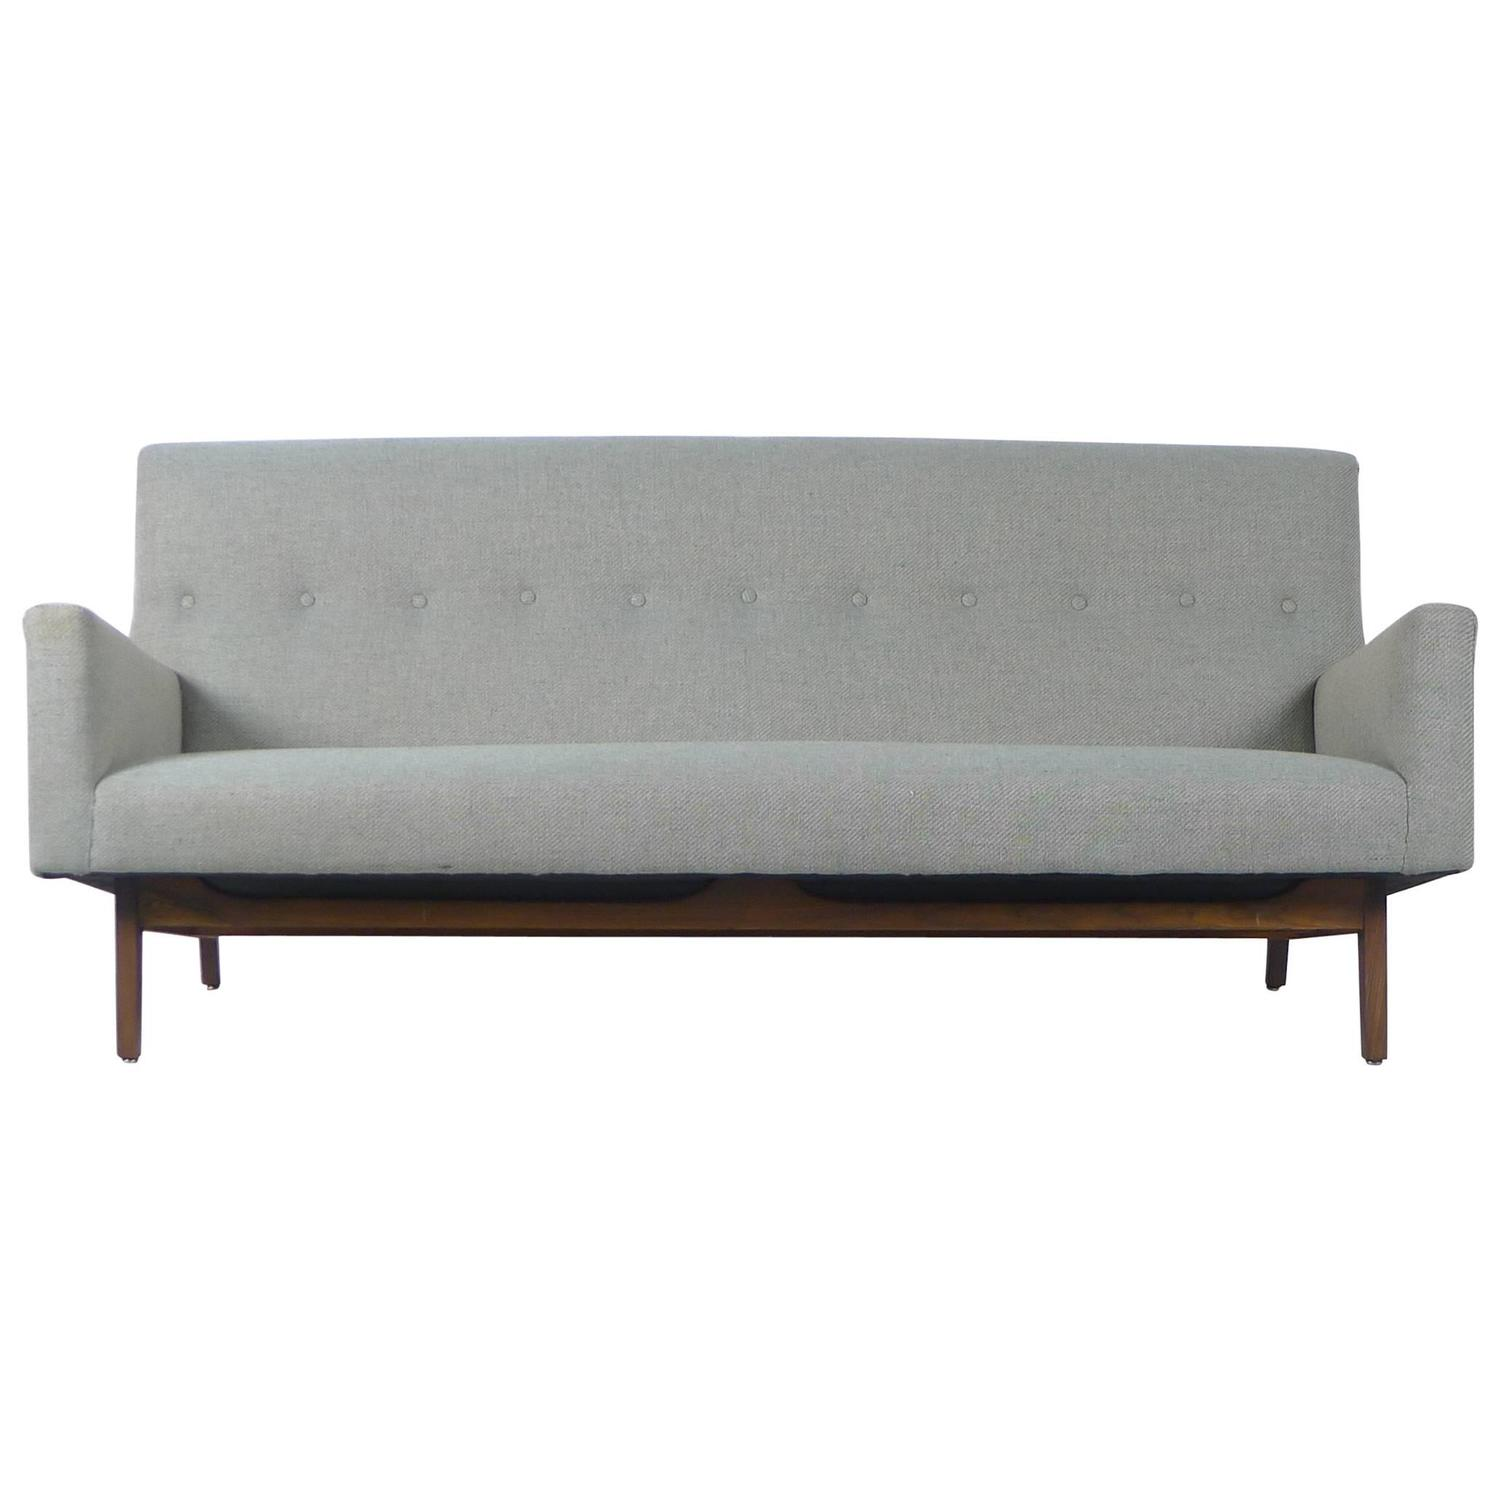 Jens Risom Sofas 18 For Sale at 1stdibs